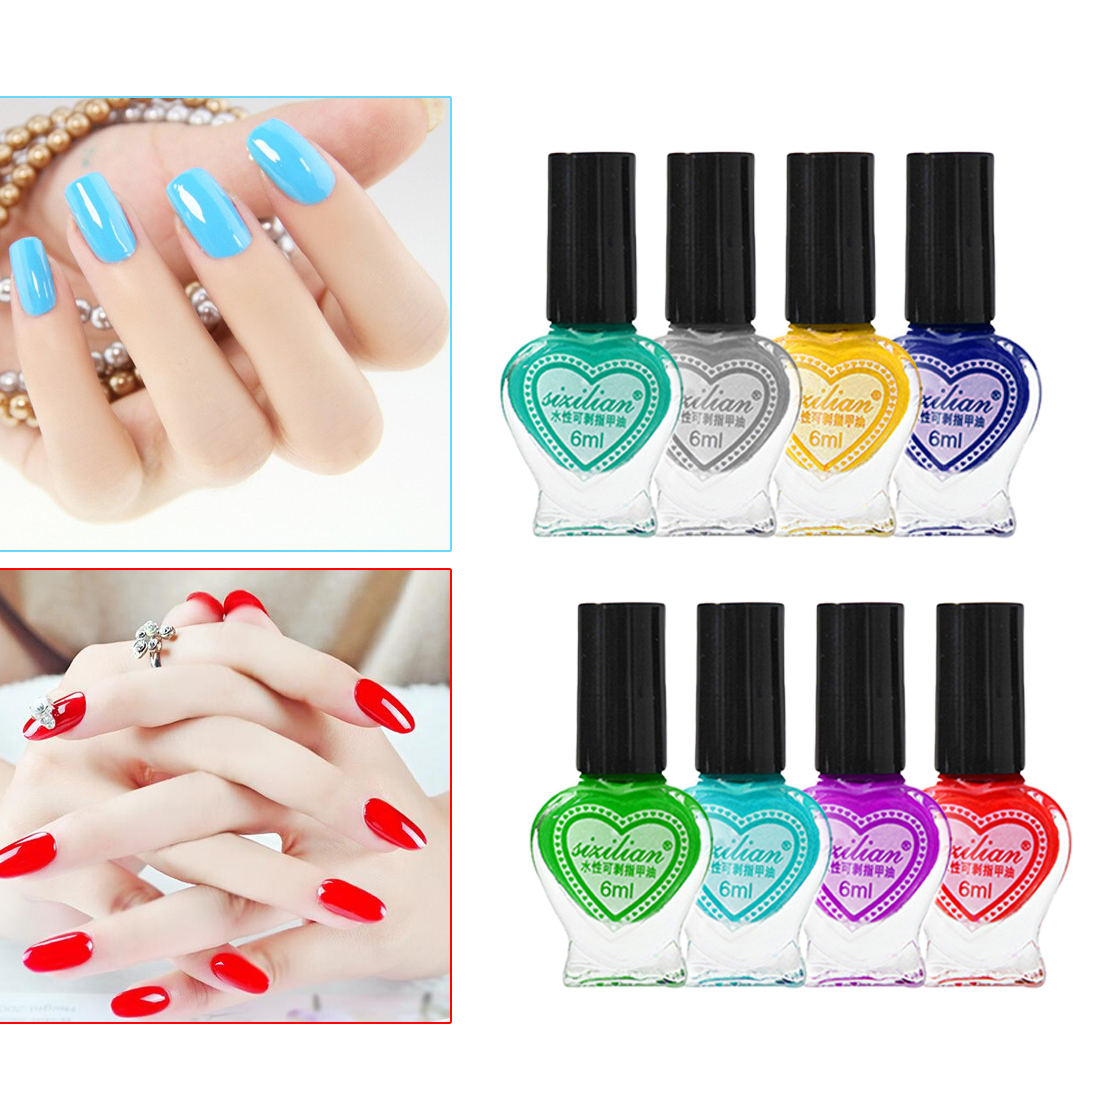 1 Bottle Water Base Nail Polish 6ml 24 Colors Pro Salon Eco No-toxic Peel Off Fast Dry Art Nails Paint Finger Tip Lacquer